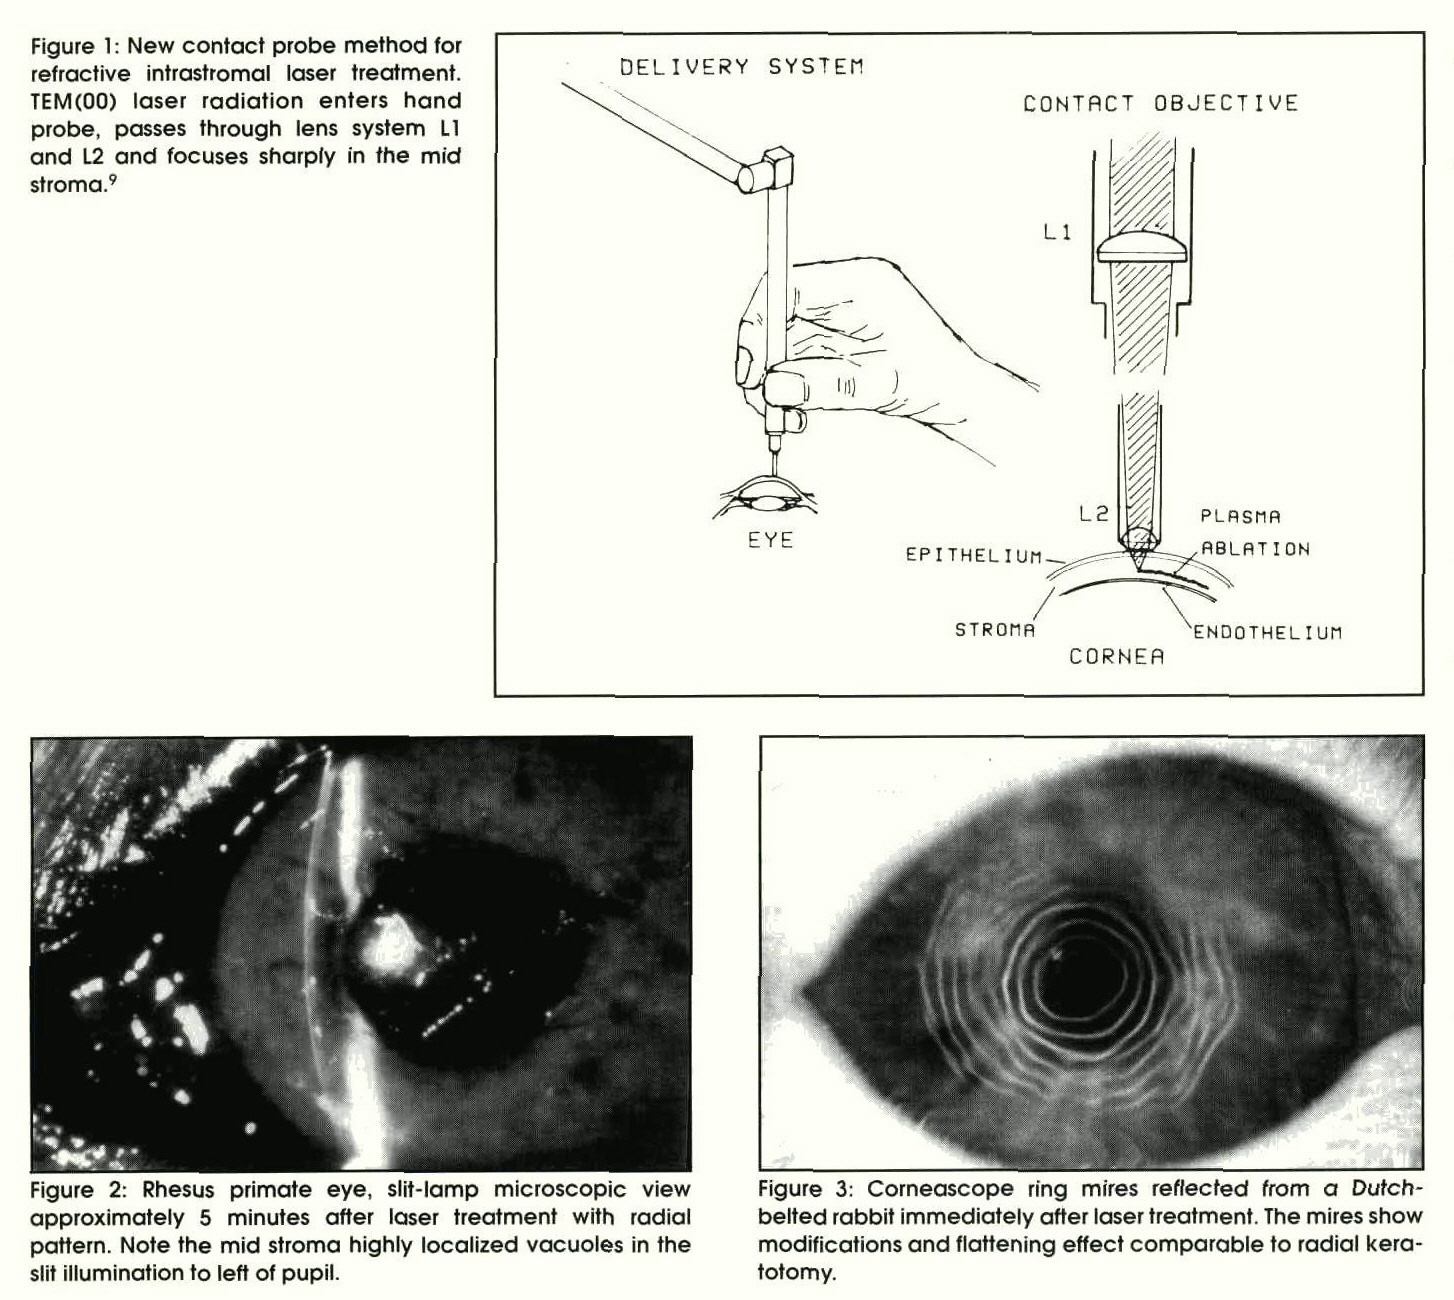 Figure 1 : New contact probe method for refractive intrastromal laser treatment. TEM(OO) laser radiation enters hand probe, passes through lens system Ll and L2 and focuses sharply in the mid stroma.9Figure 2: Rhesus primate eye, slit-lamp microscopic view approximately 5 minutes after laser treatment with radial pattern. Note the mid stroma highly localized vacuoles in the slit illumination to left of pupil.Figure 3: Corneascope ring mires reflected from a Dutchbelted rabbit immediately after laser treatment. The mires show modifications and flattening effect comparable to radial keratotomy.